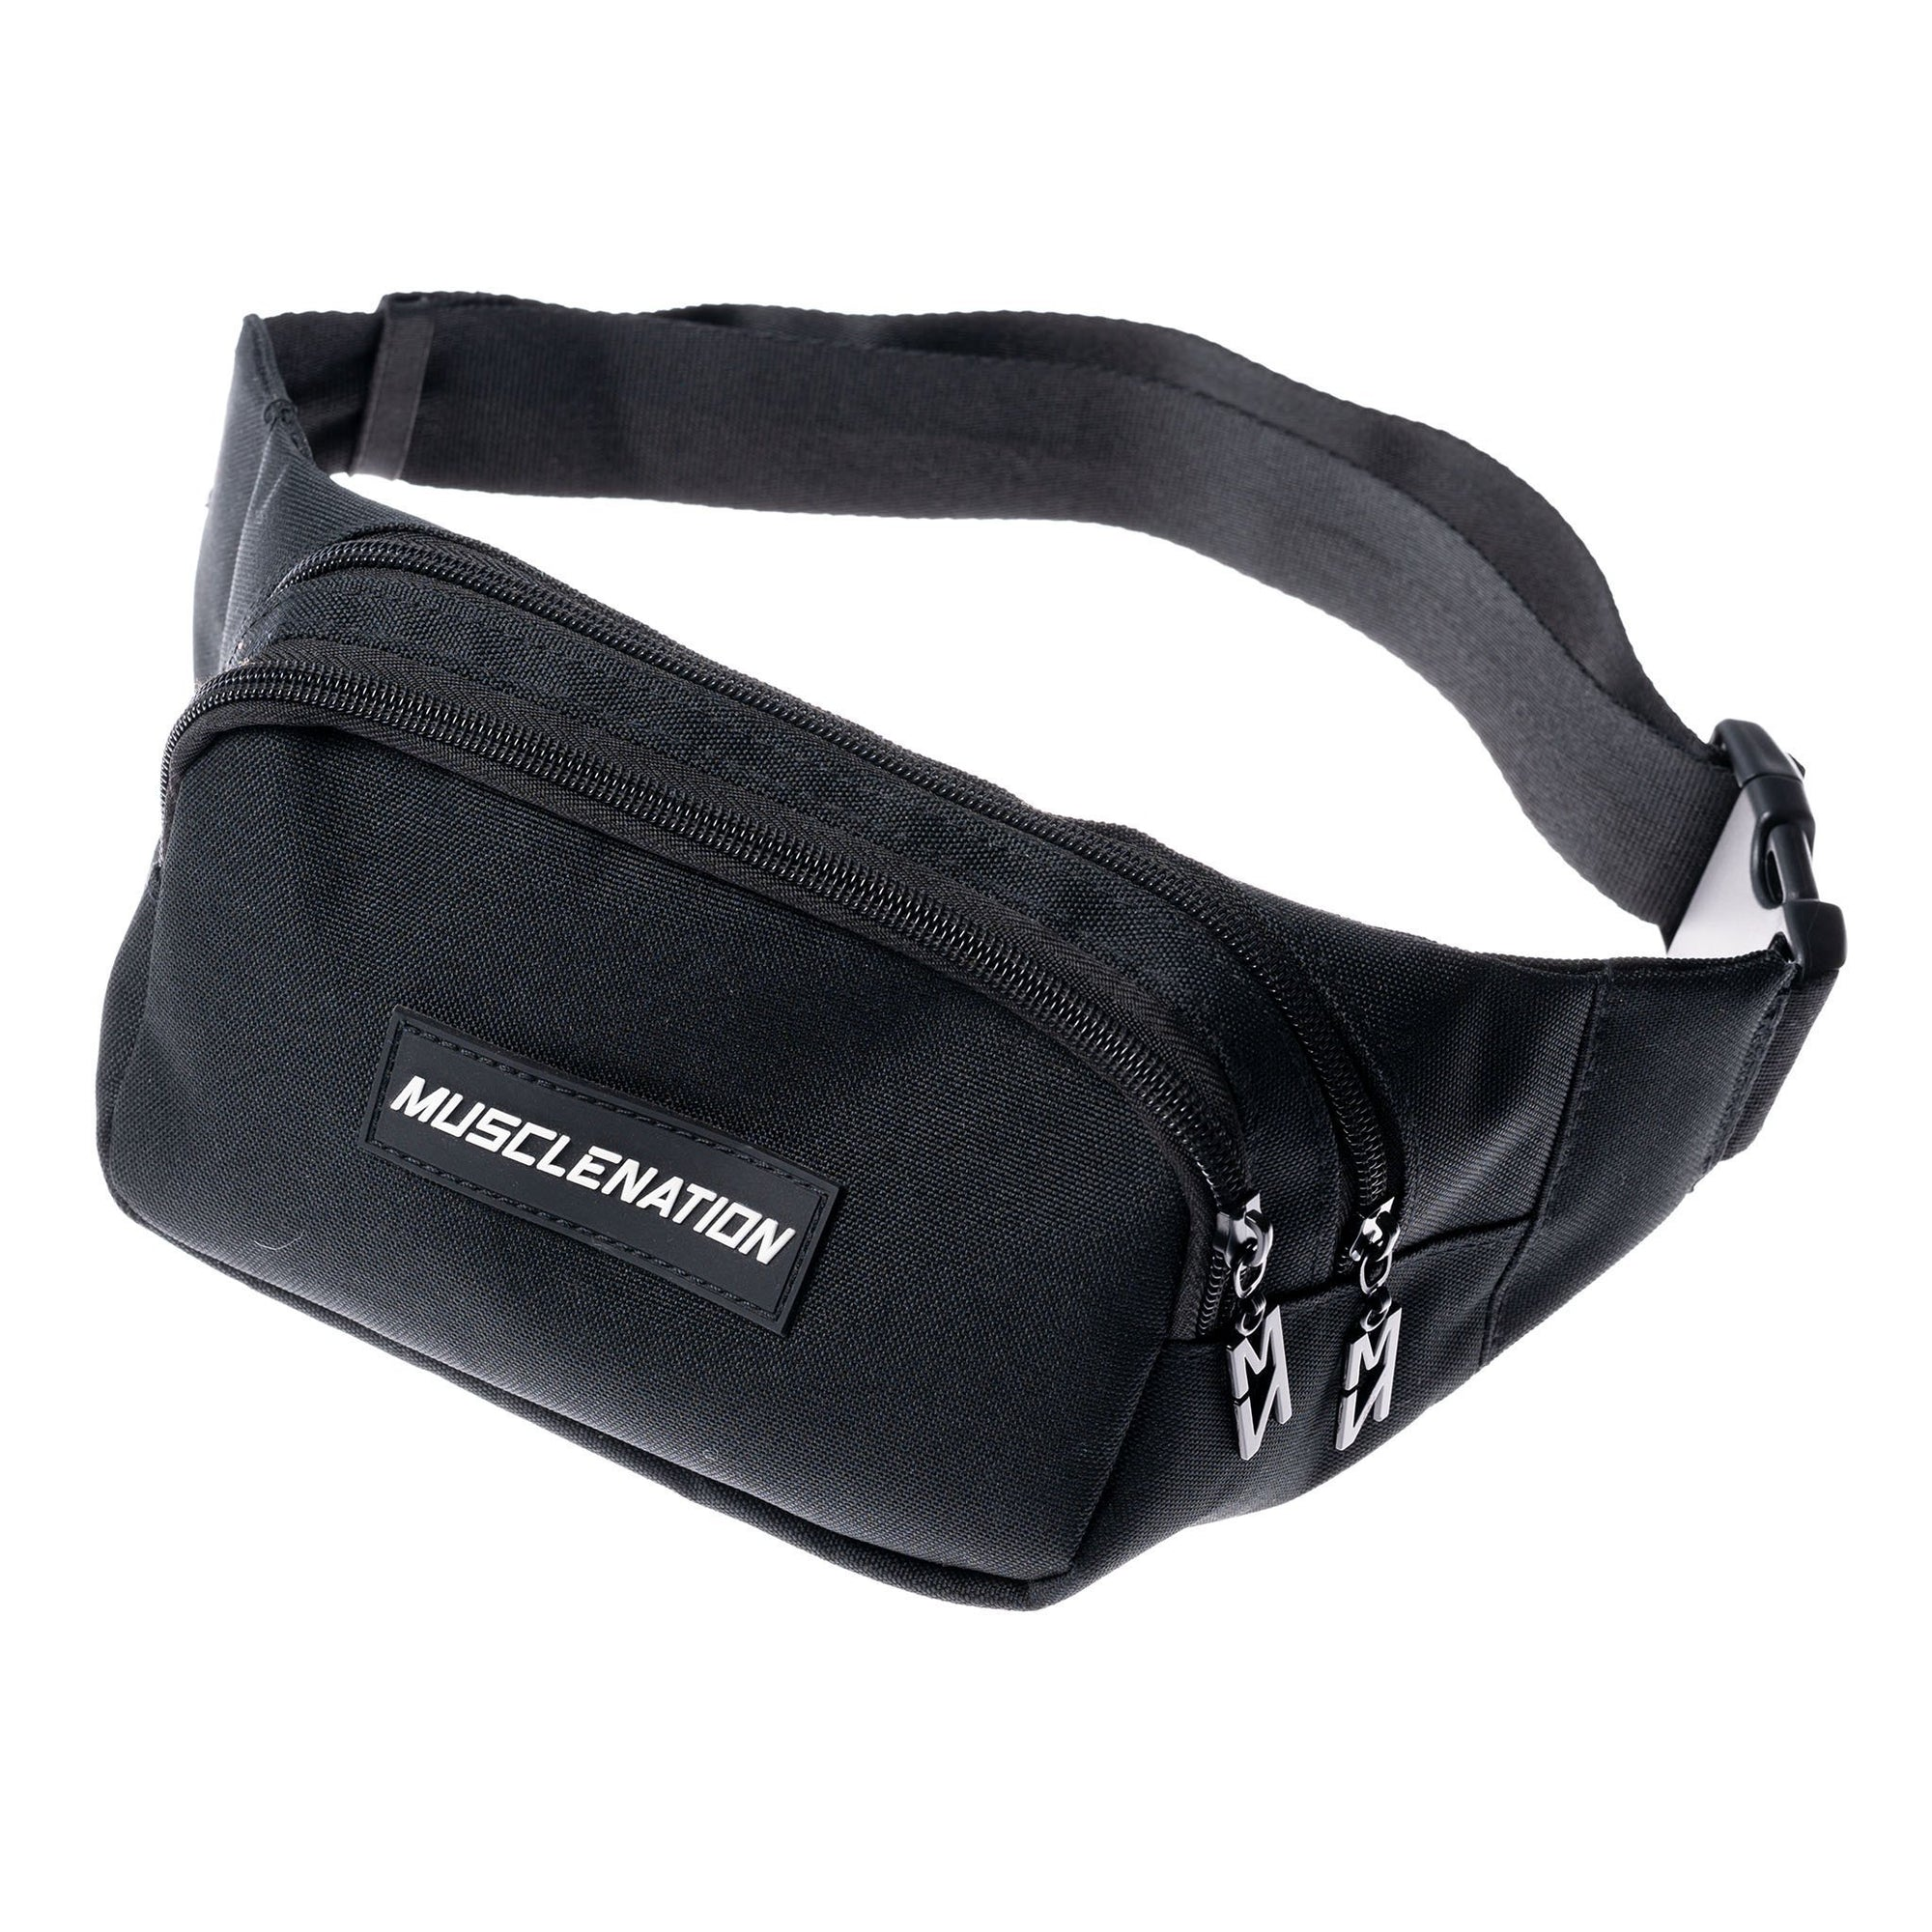 Muscle Nation Bum Bag - Black